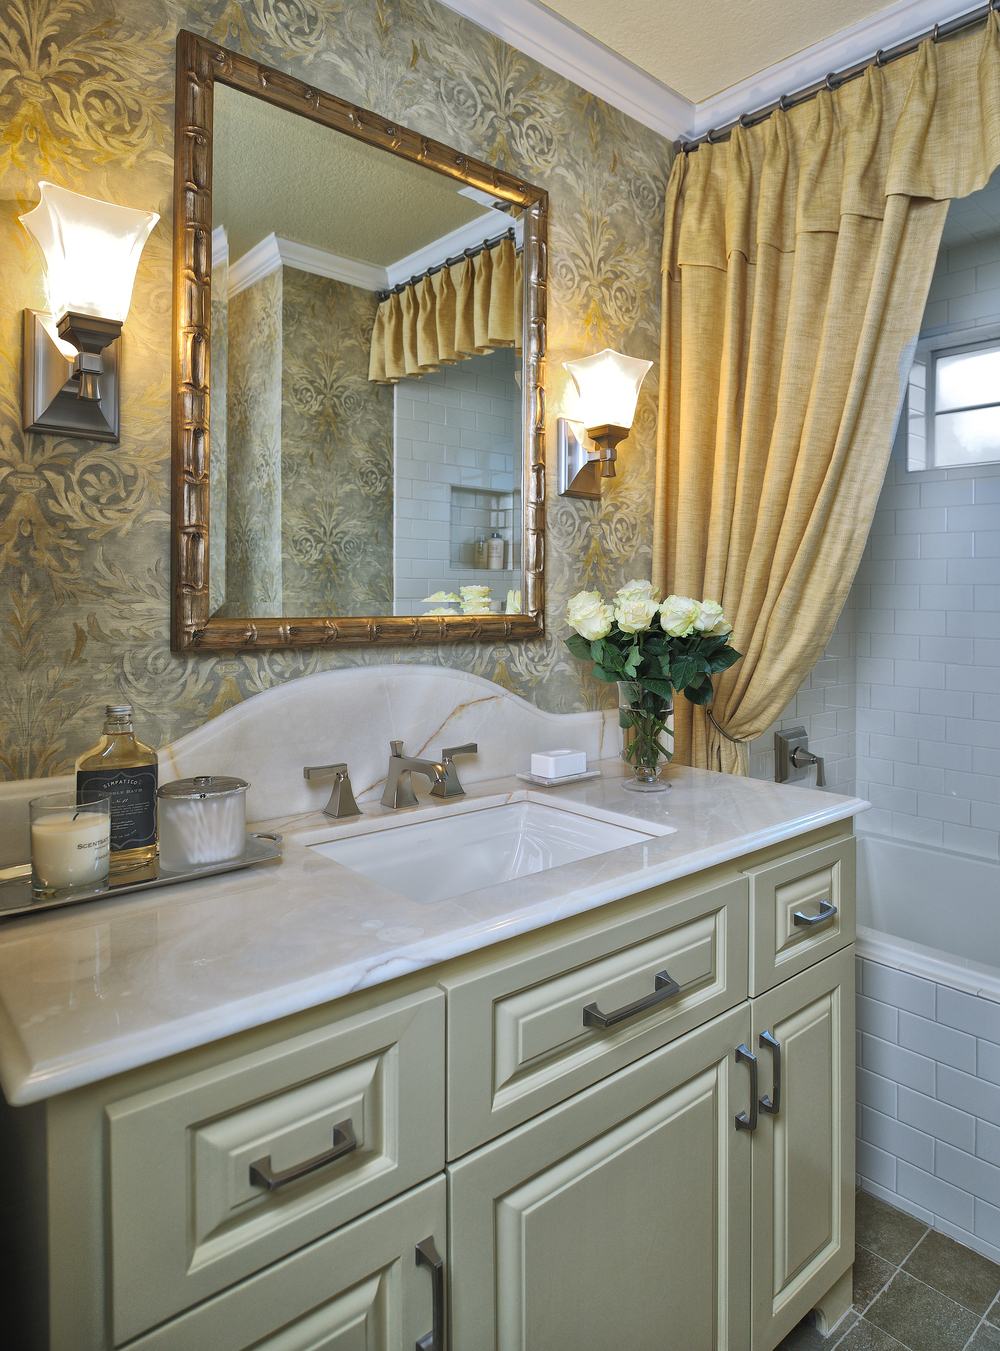 Top 10 Bathroom Design Trends, Guaranteed to Freshen Up Your Home — DESIGNED